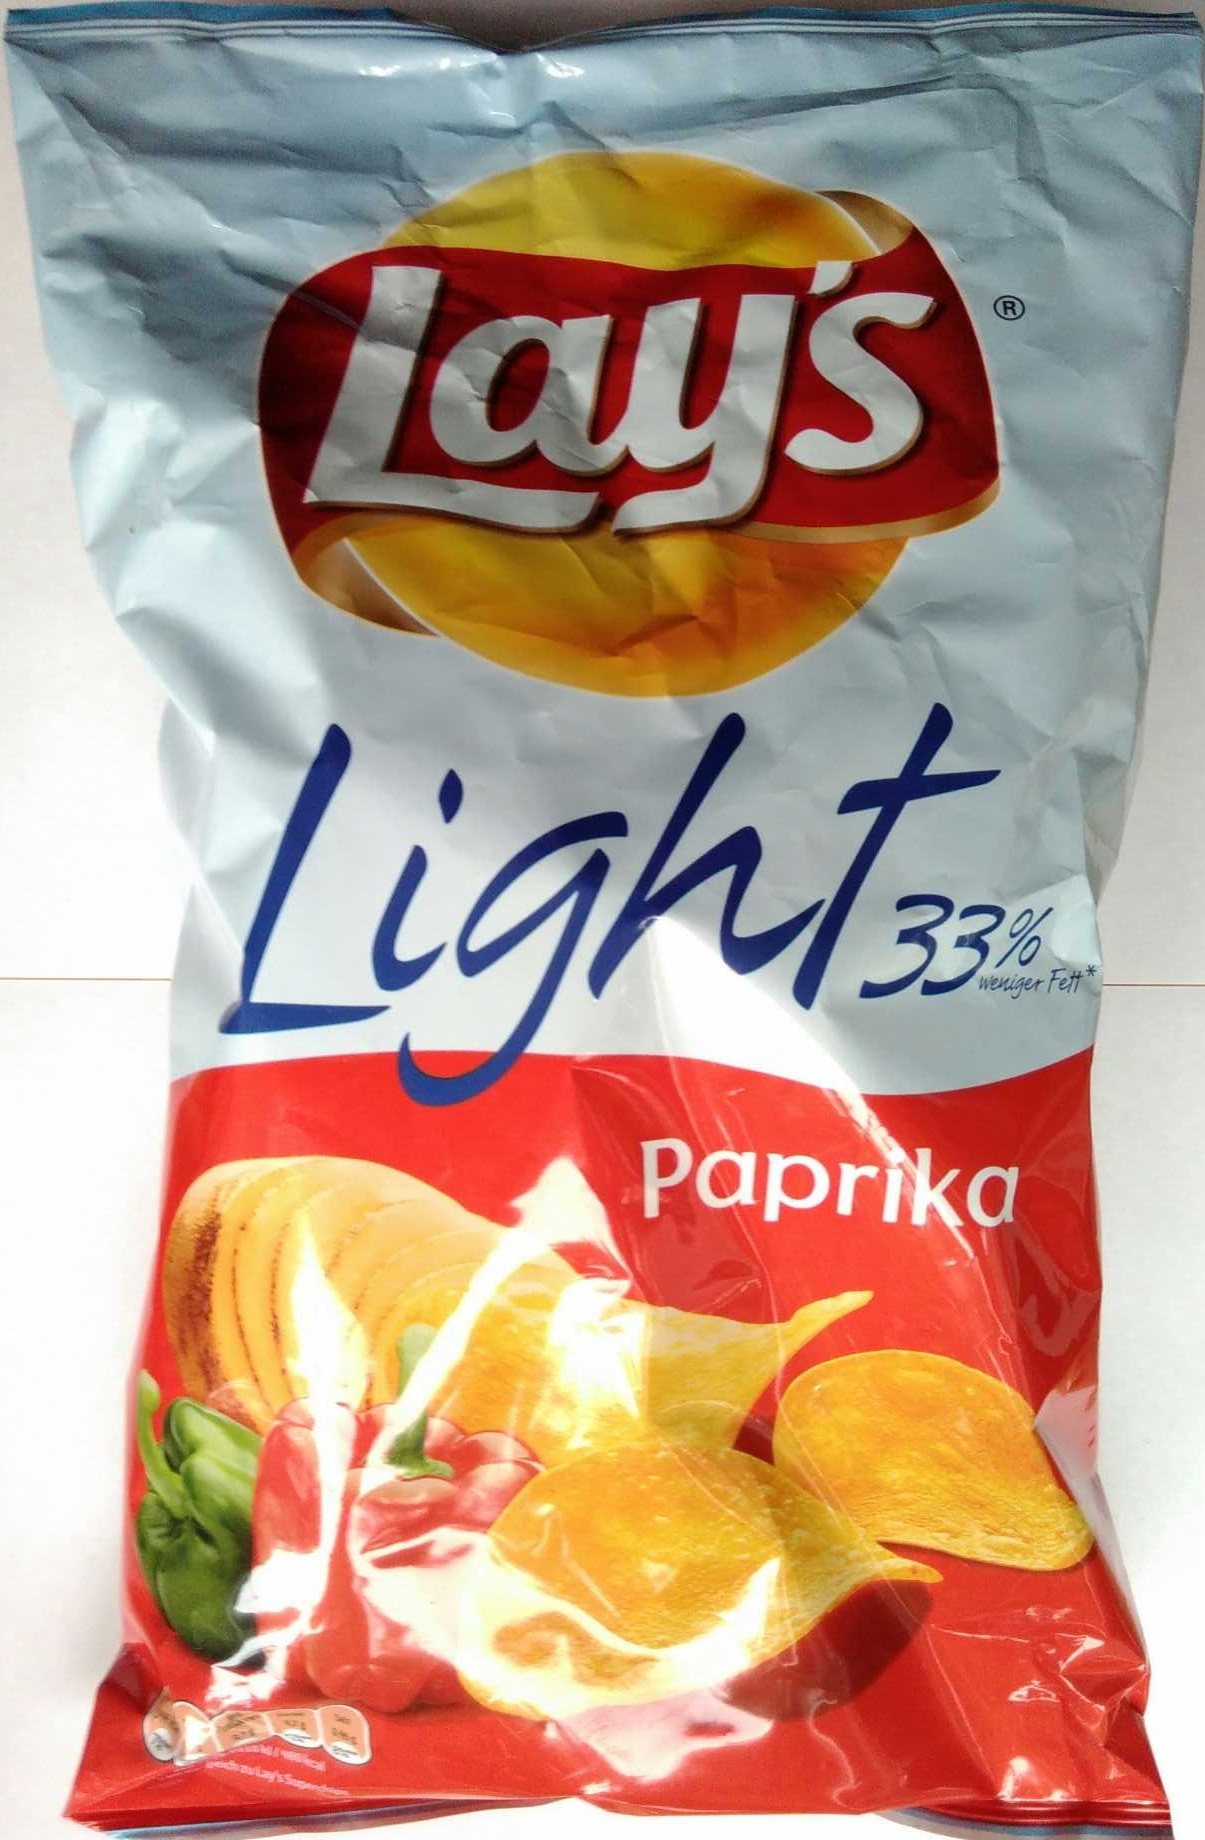 Light 33% Paprika - Produkt - de